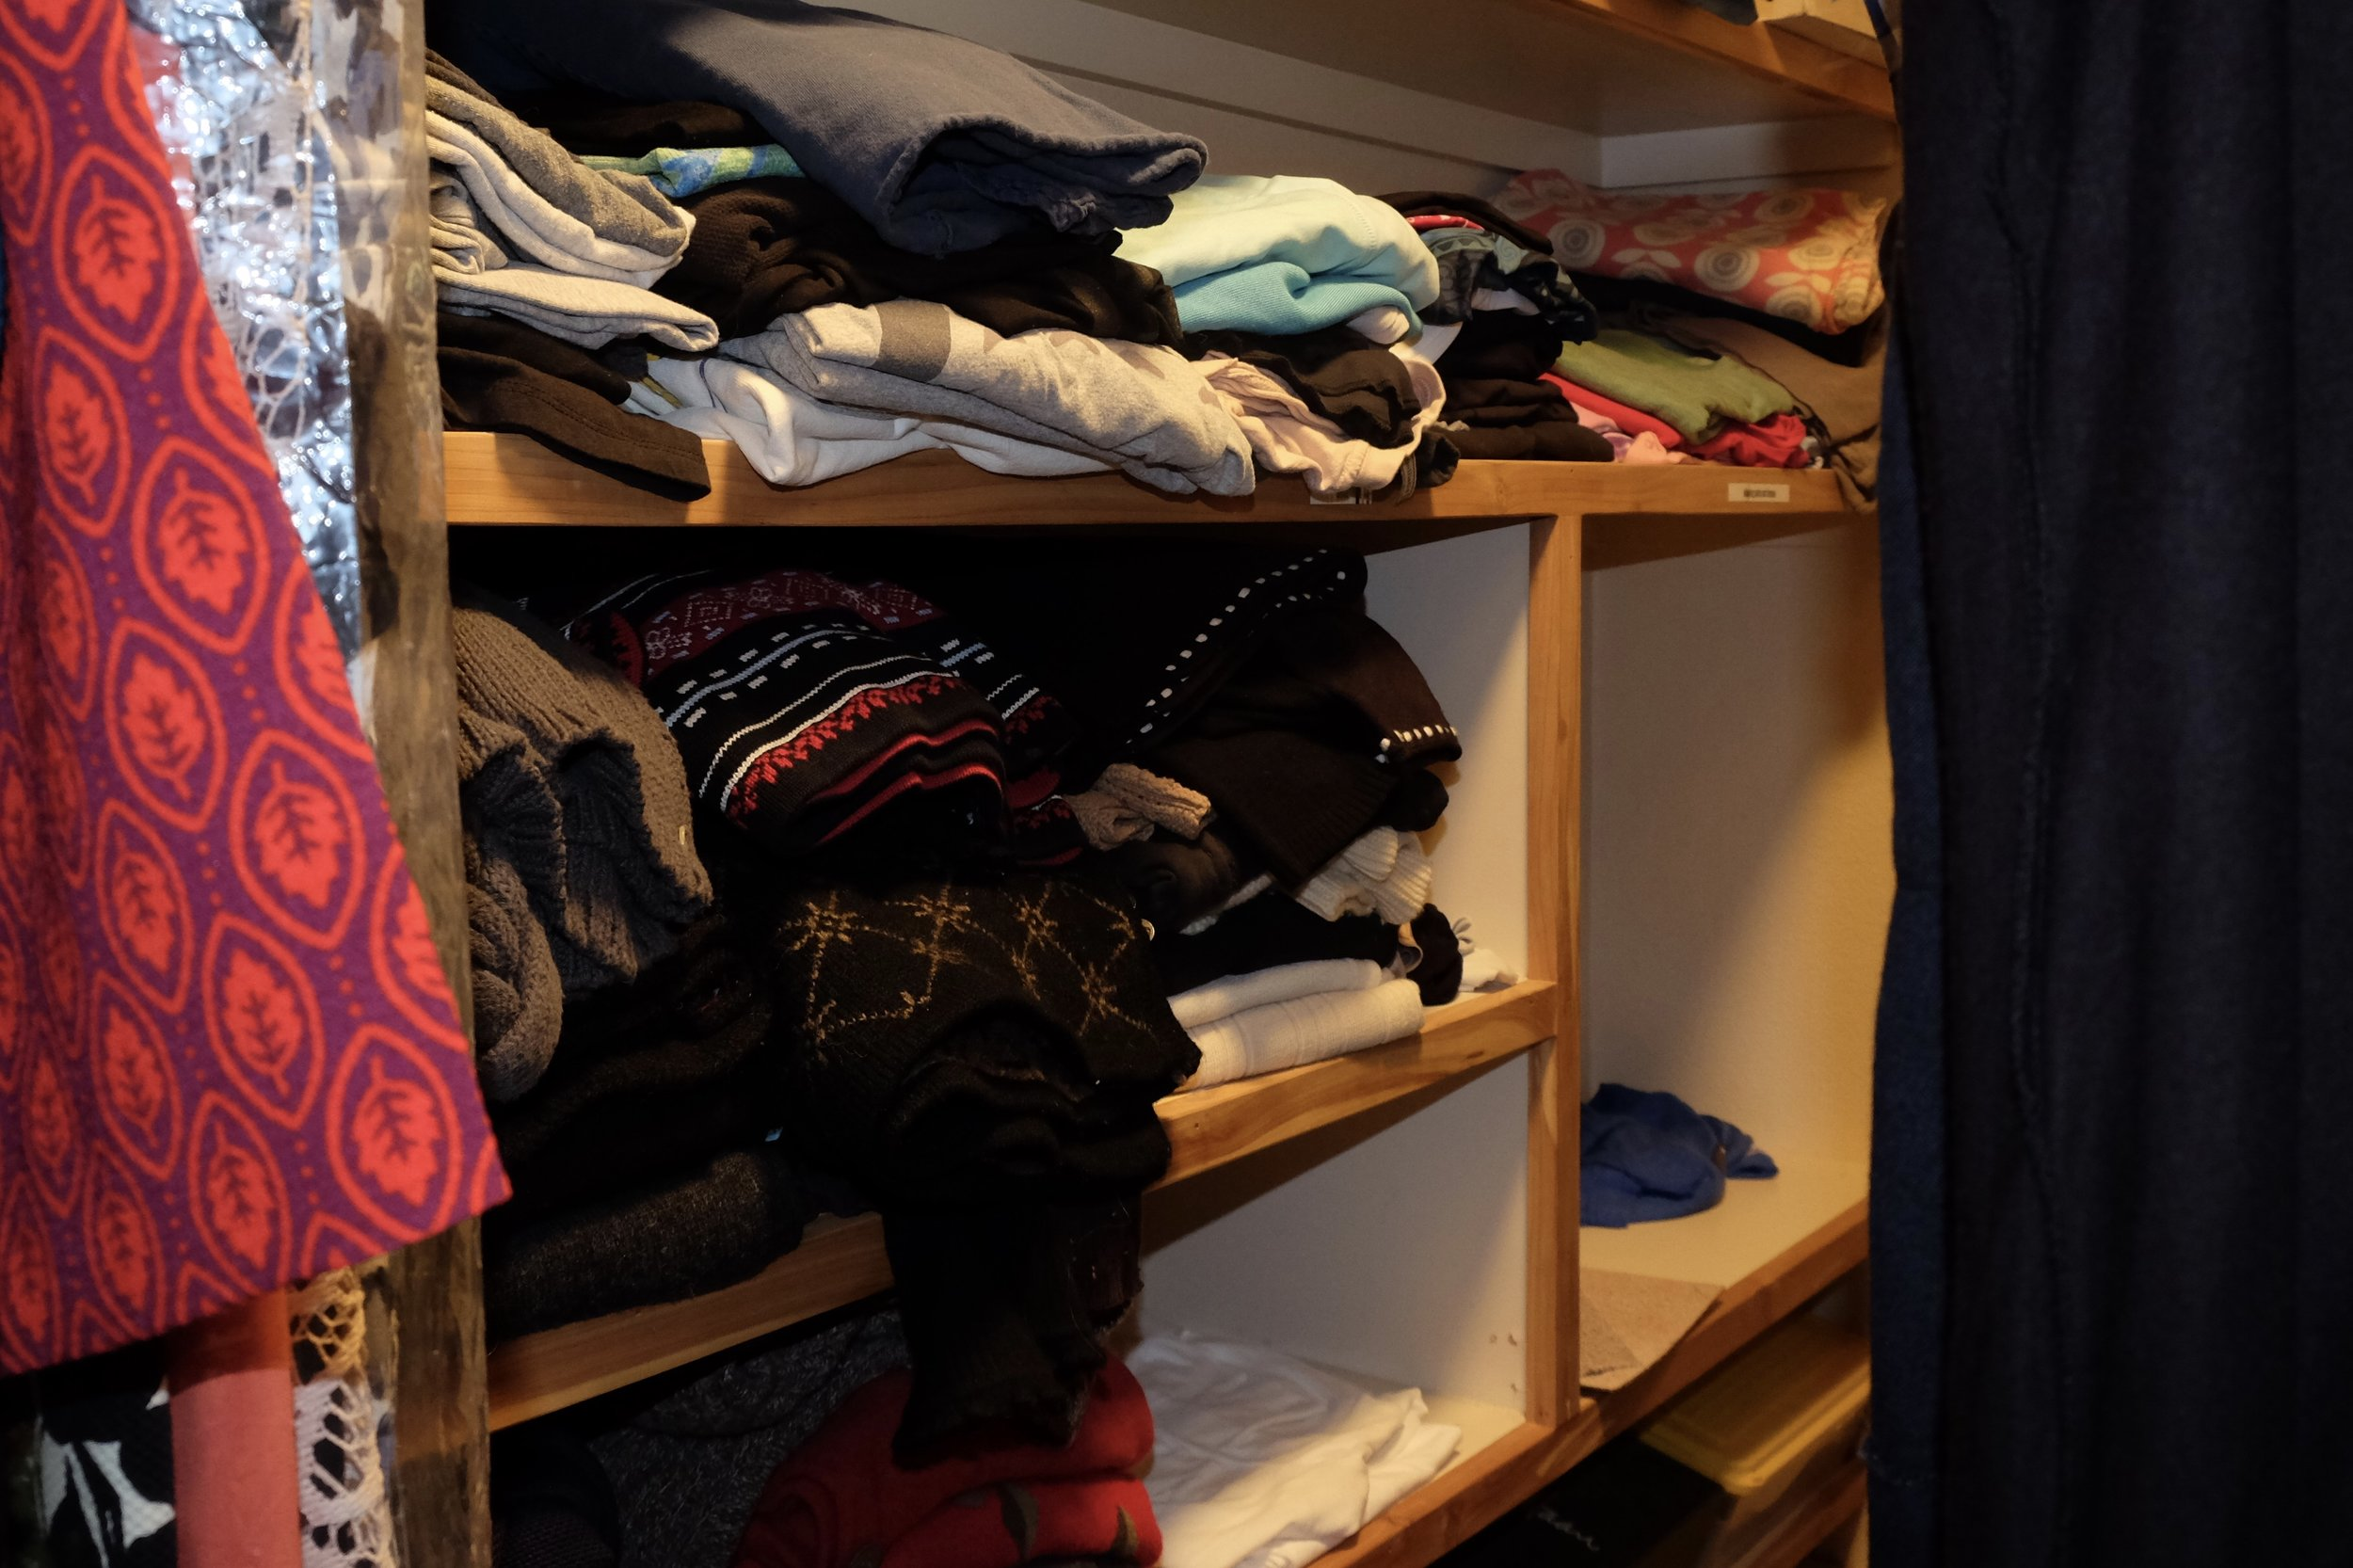 Stacks of clothing rarely stay neat